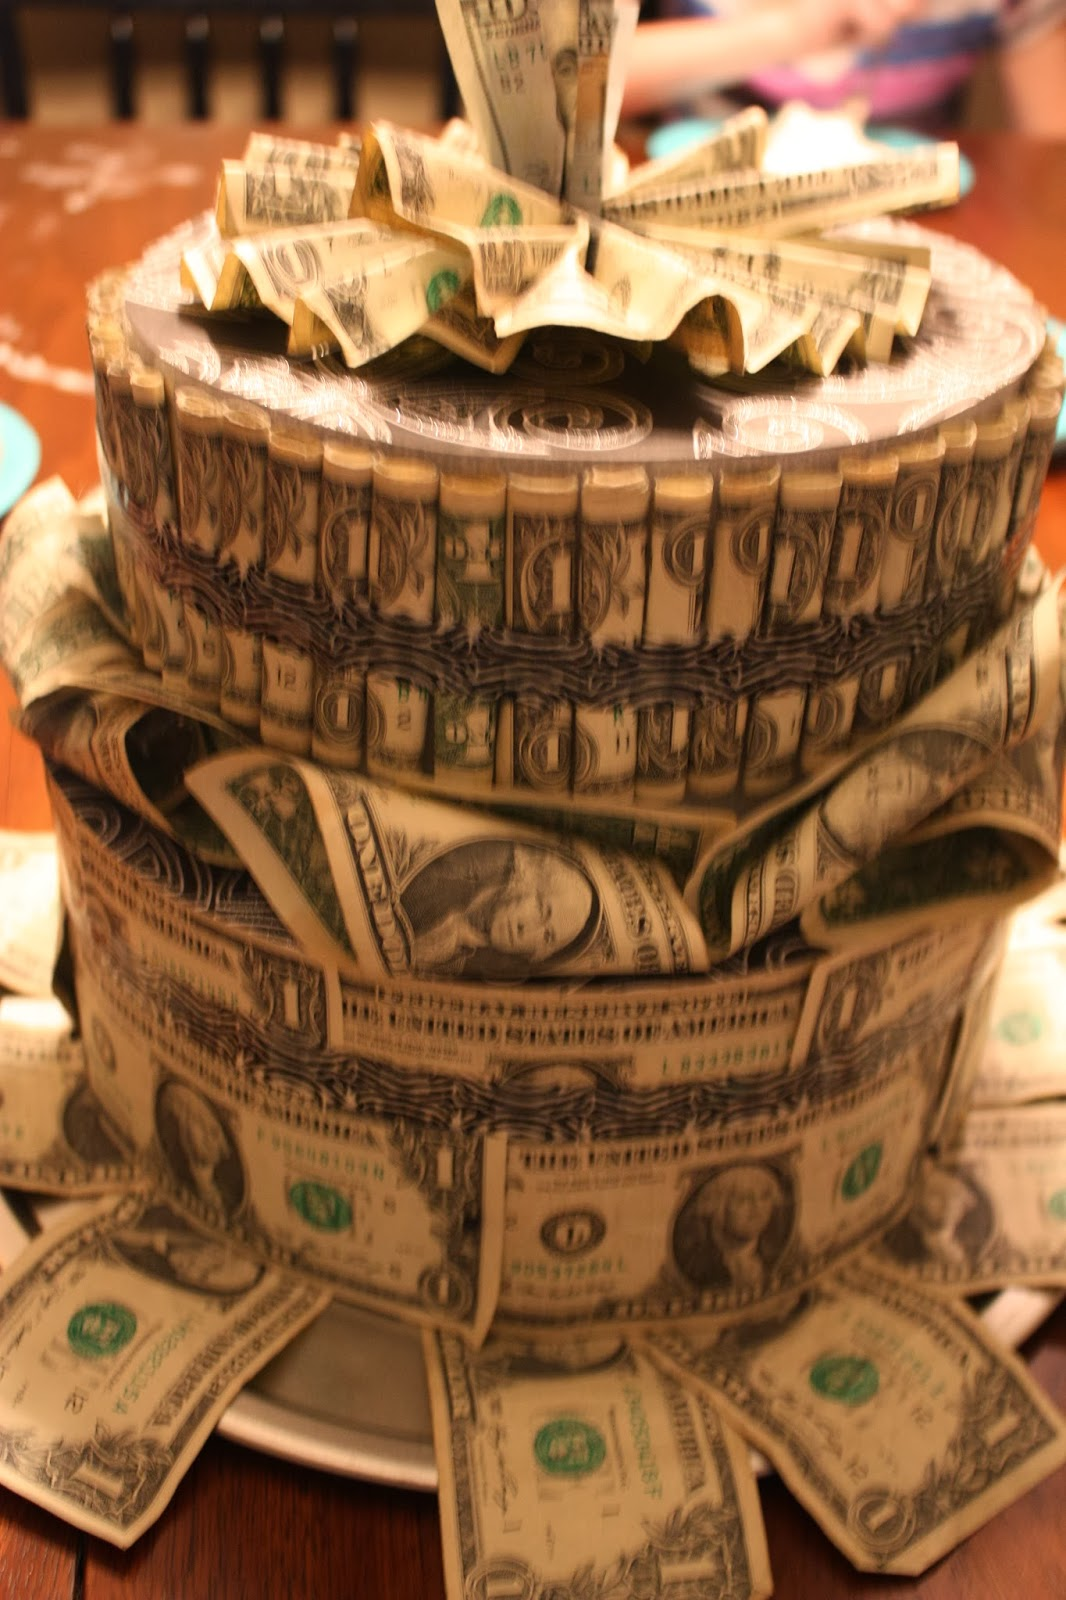 121 Best Images About Money Cake On Pinterest Treasure Chest 25